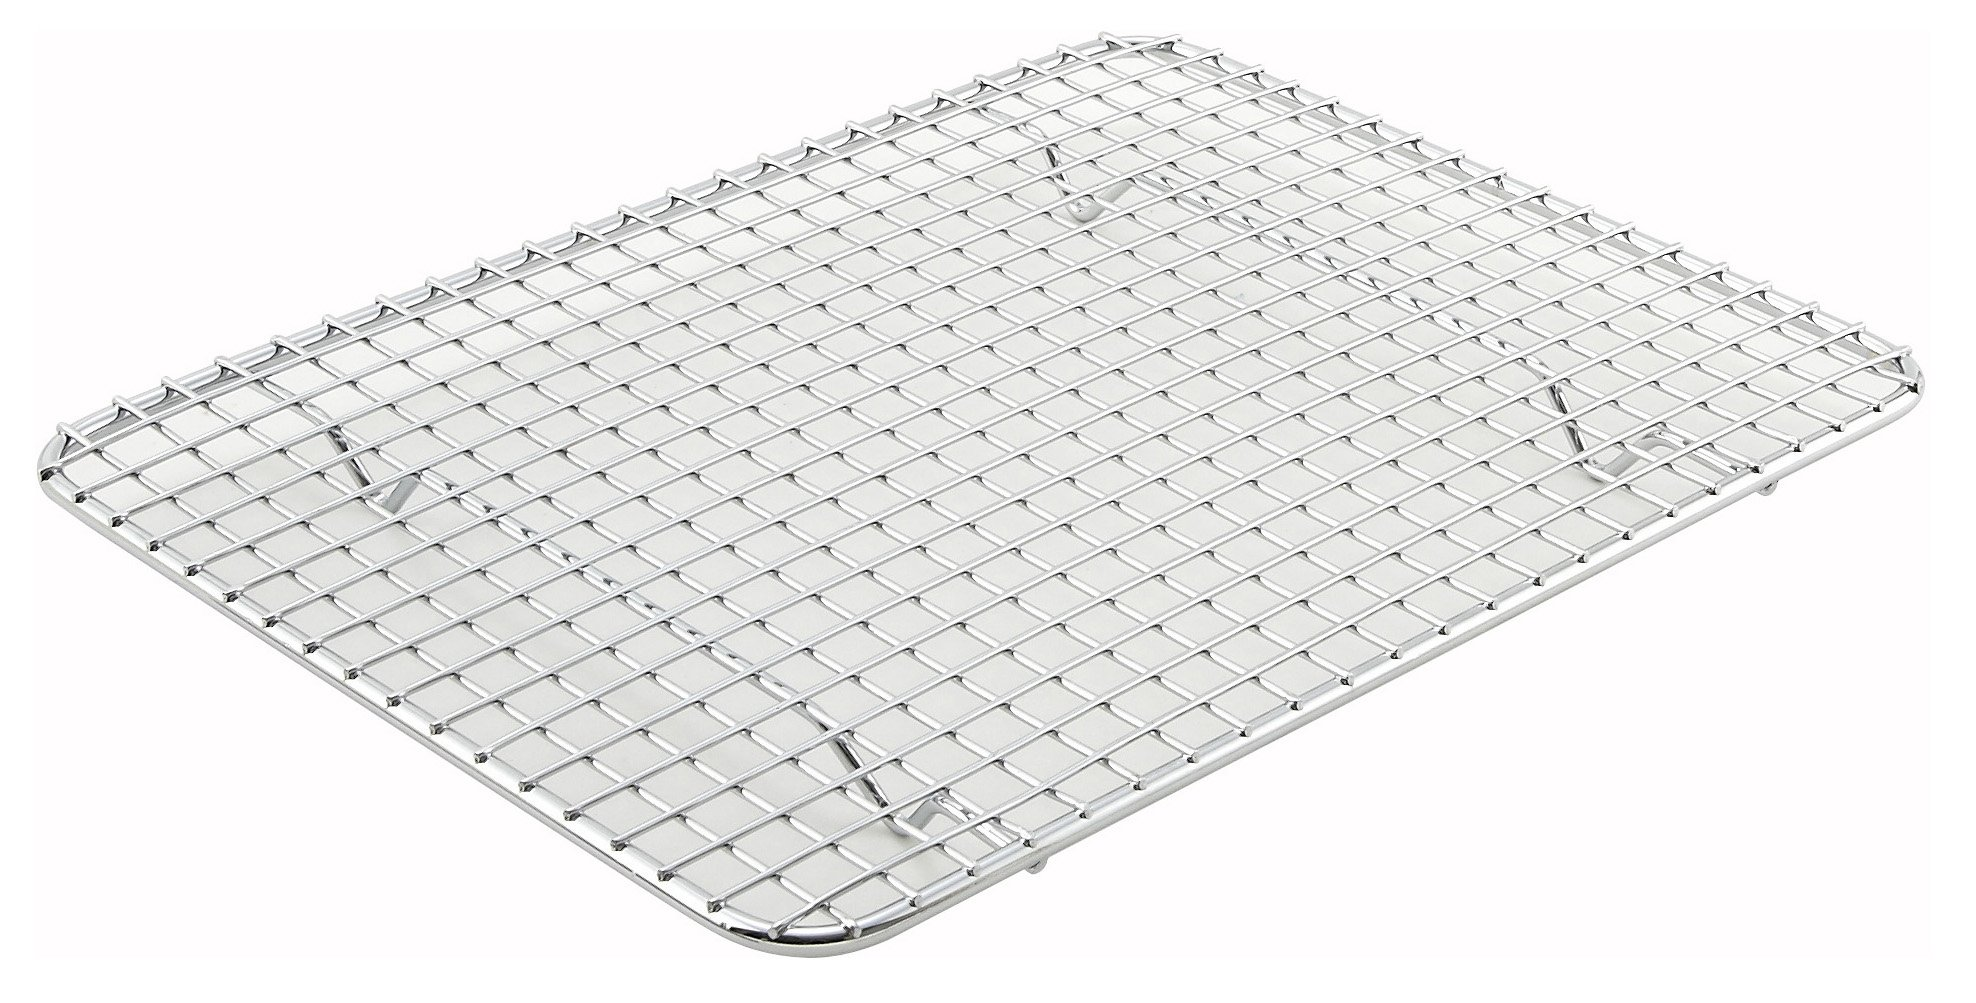 Pan Grate for Half-size Steam Pan, 8 x 10, Chrome Plated